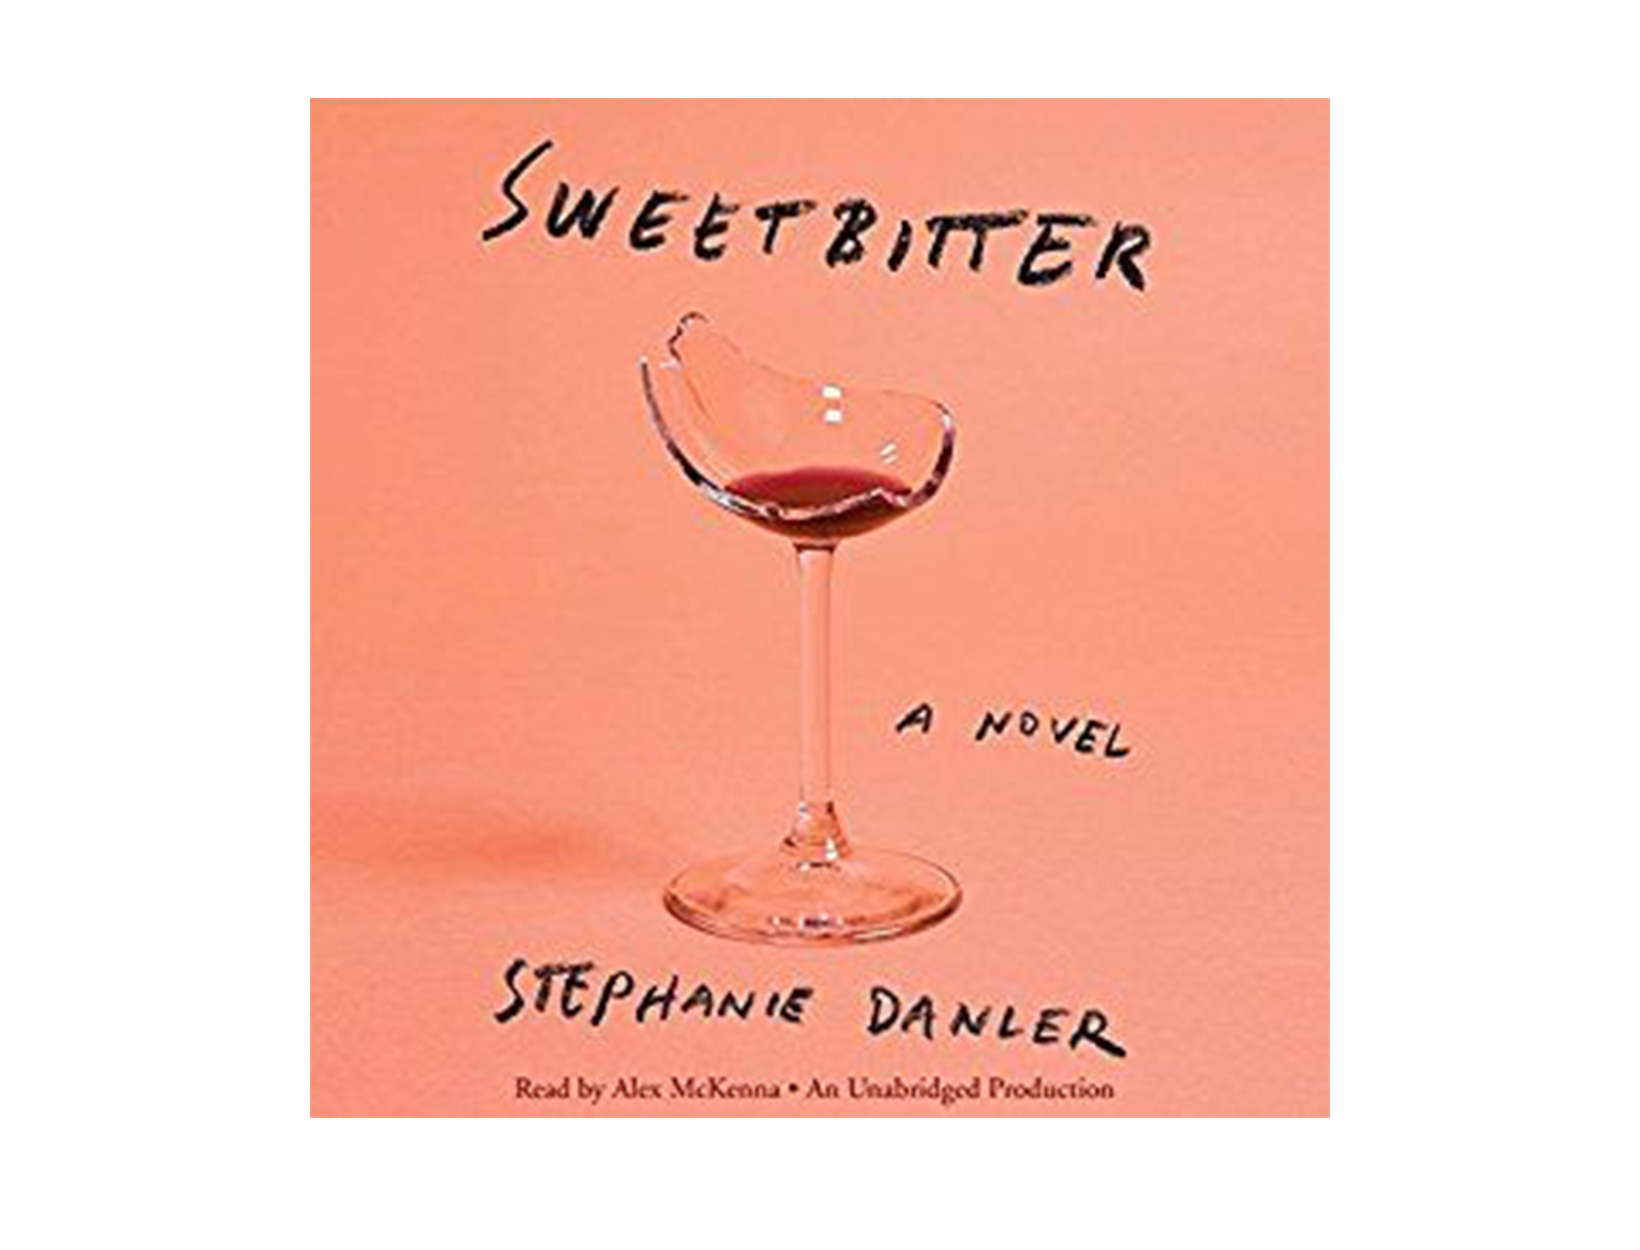 Sweetbitter by Stephanie Danler, read by Alex McKenna